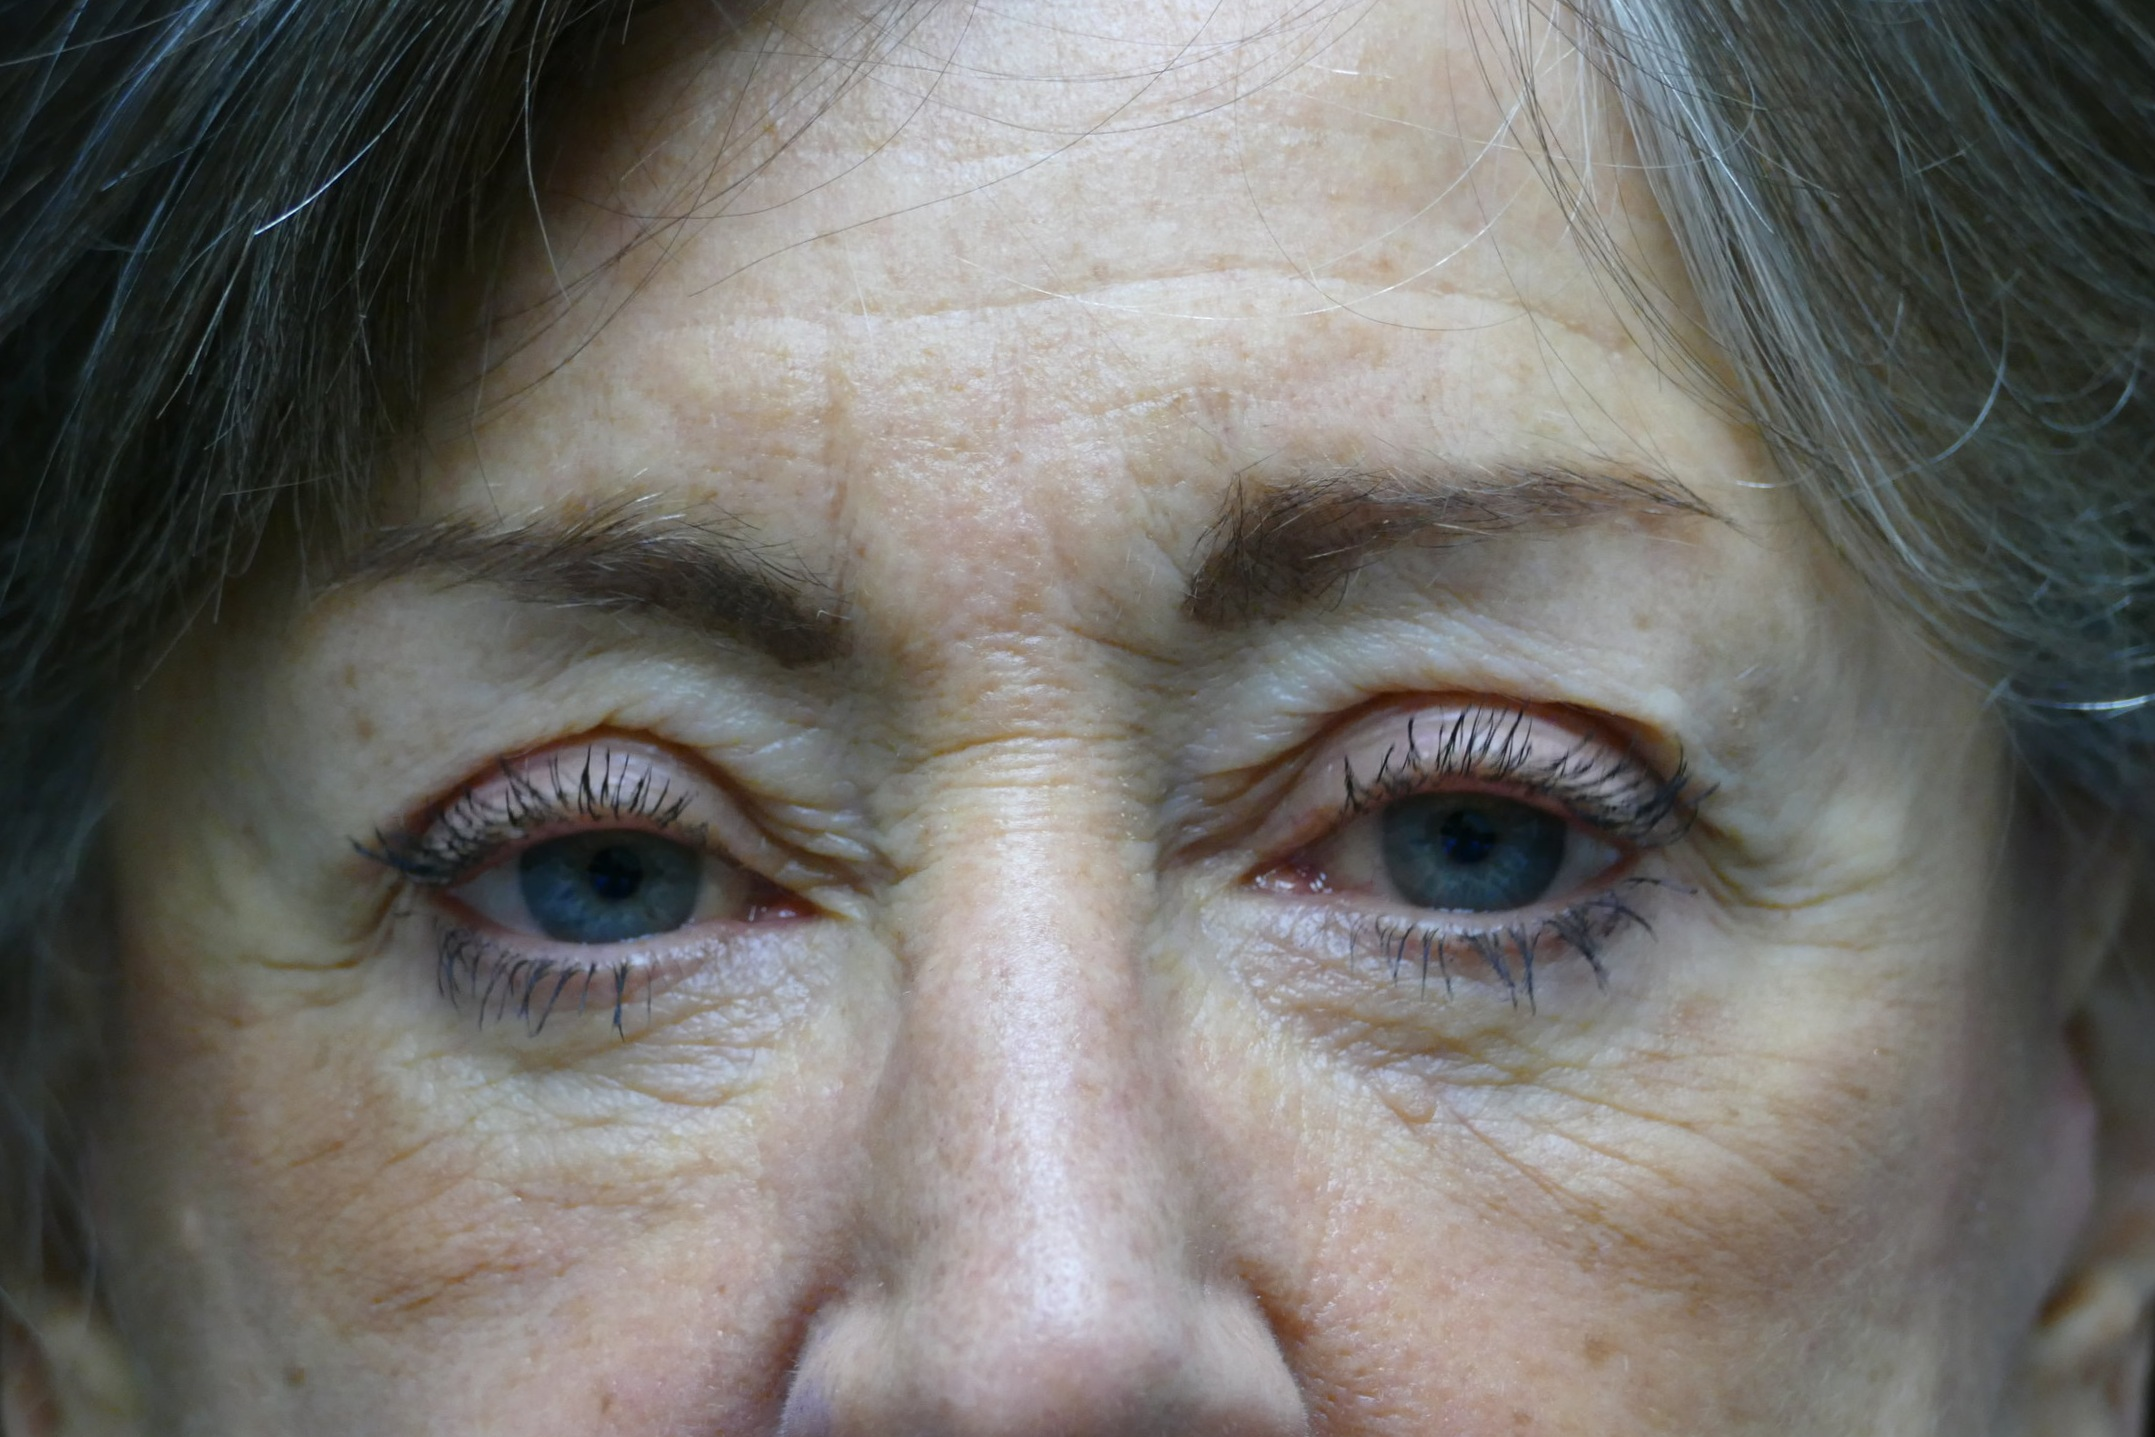 60 year old female 5 days post upper eyelid surgery using local anesthesia.